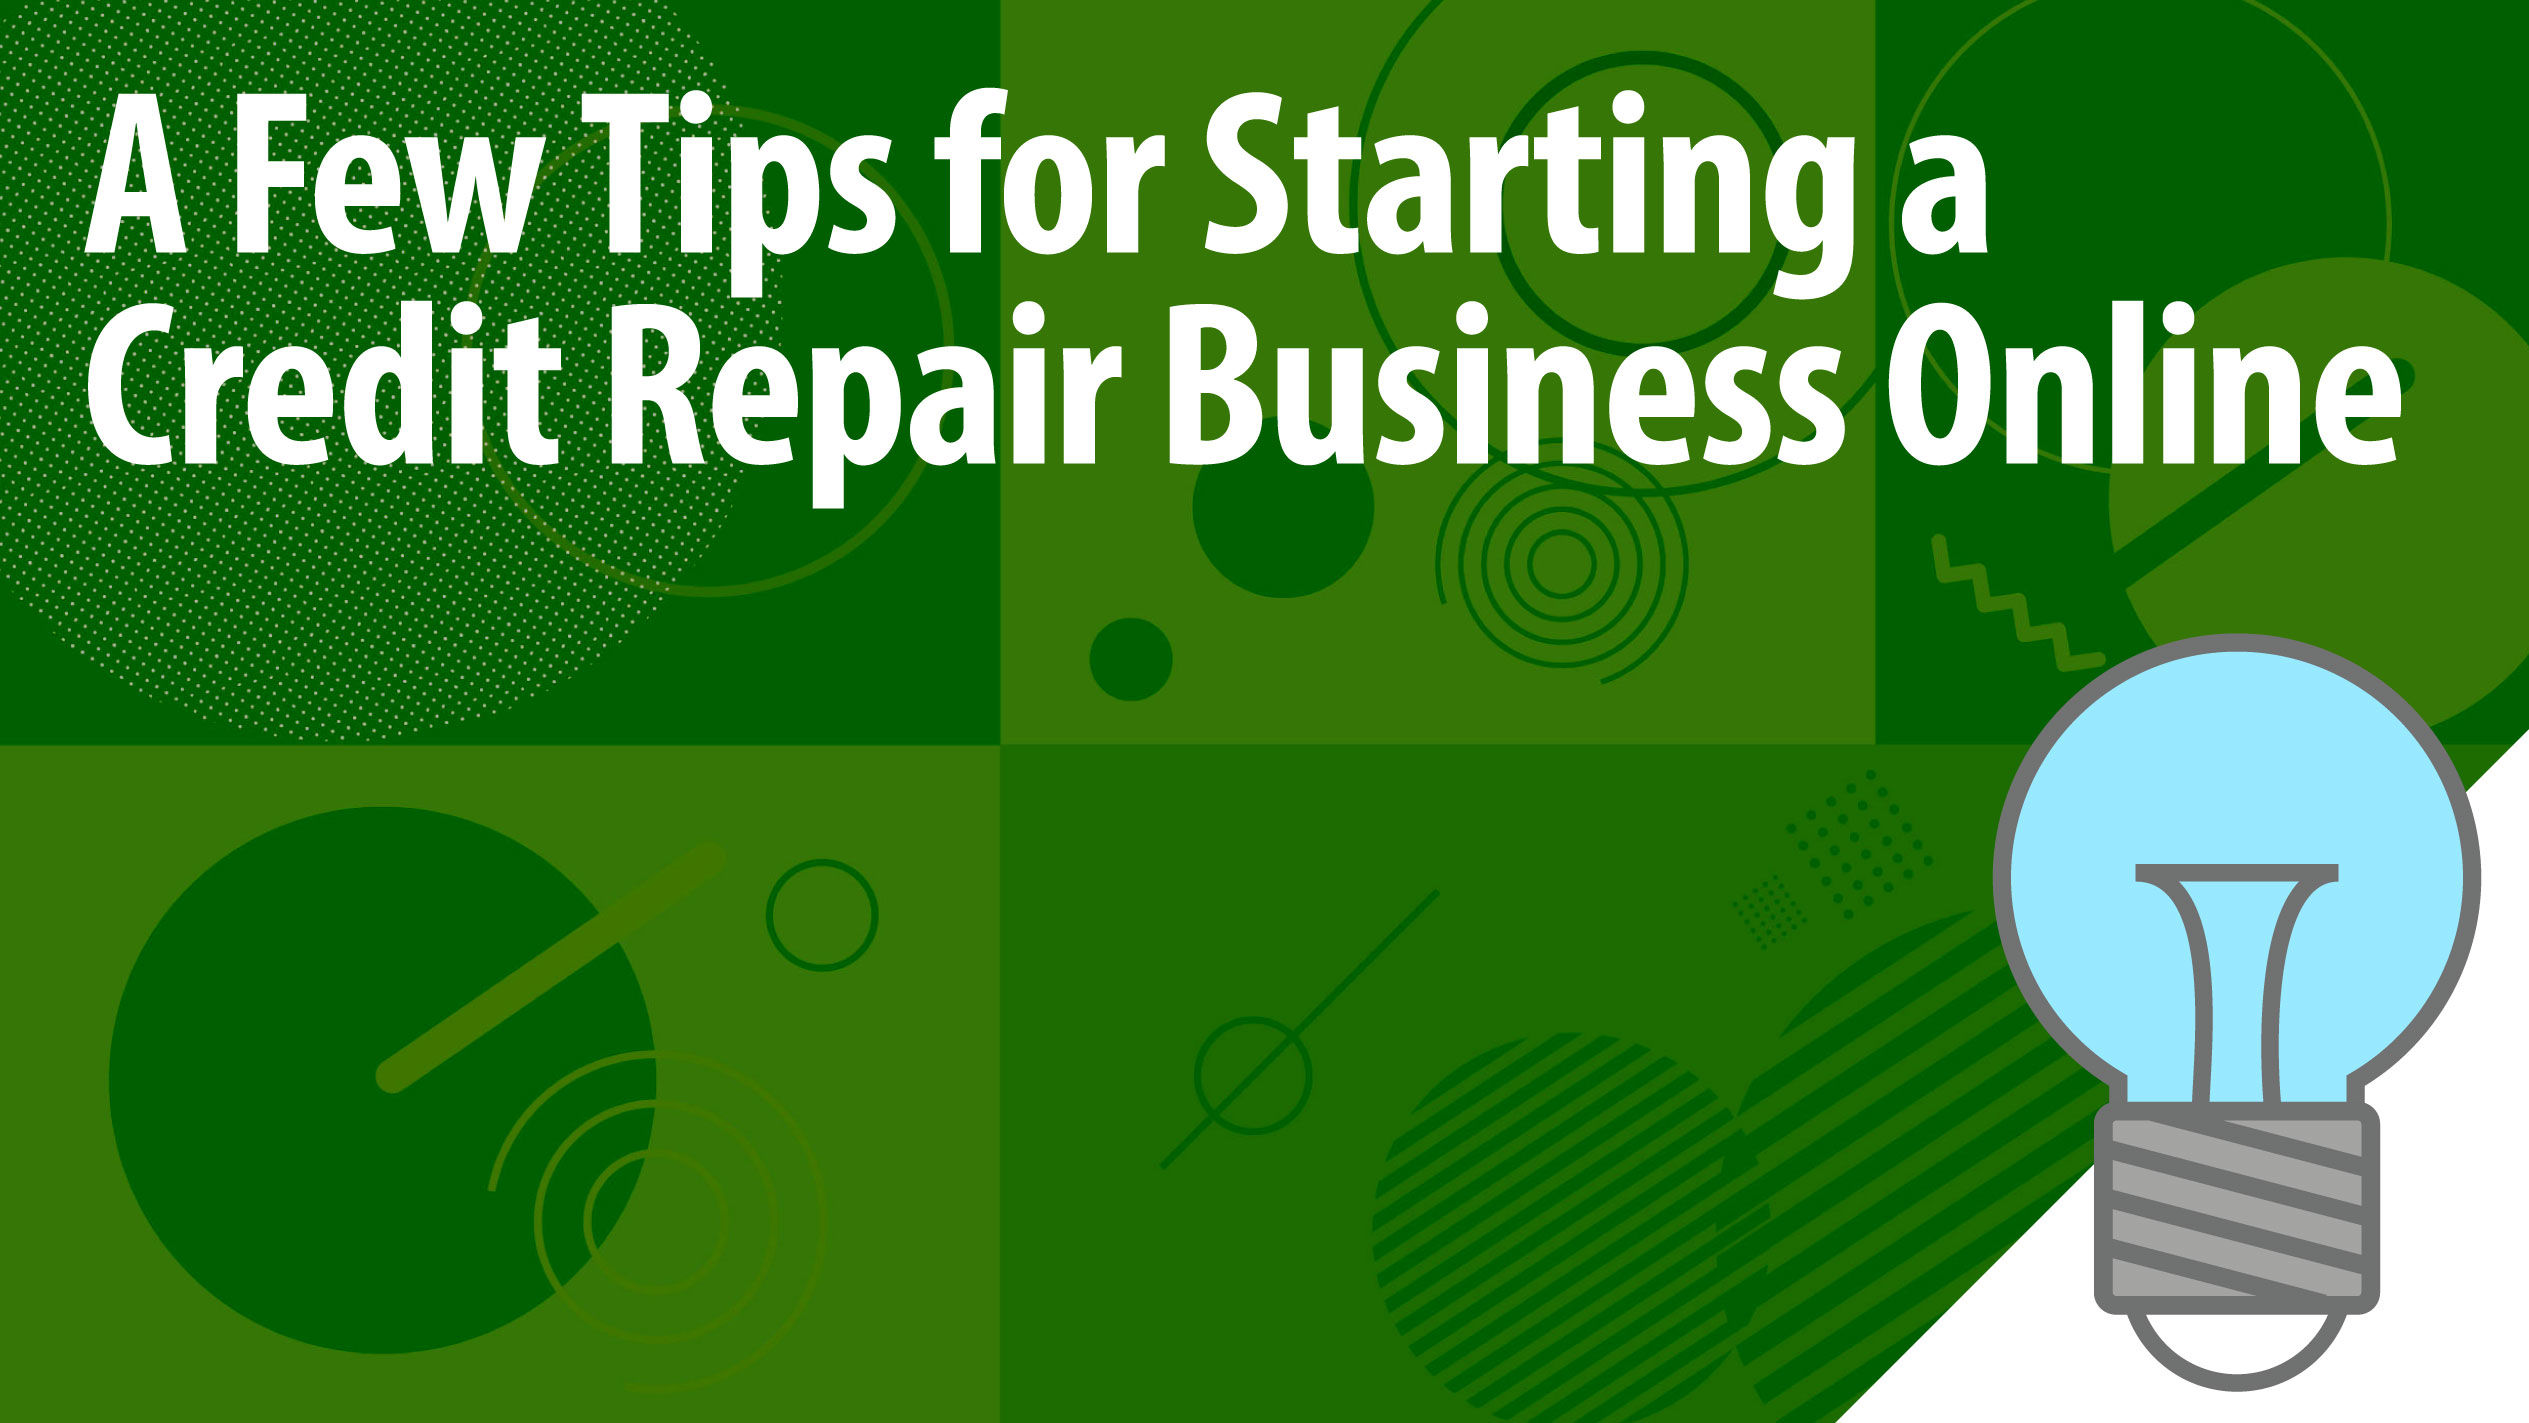 A Few Tips for Starting a Credit Repair Business Online